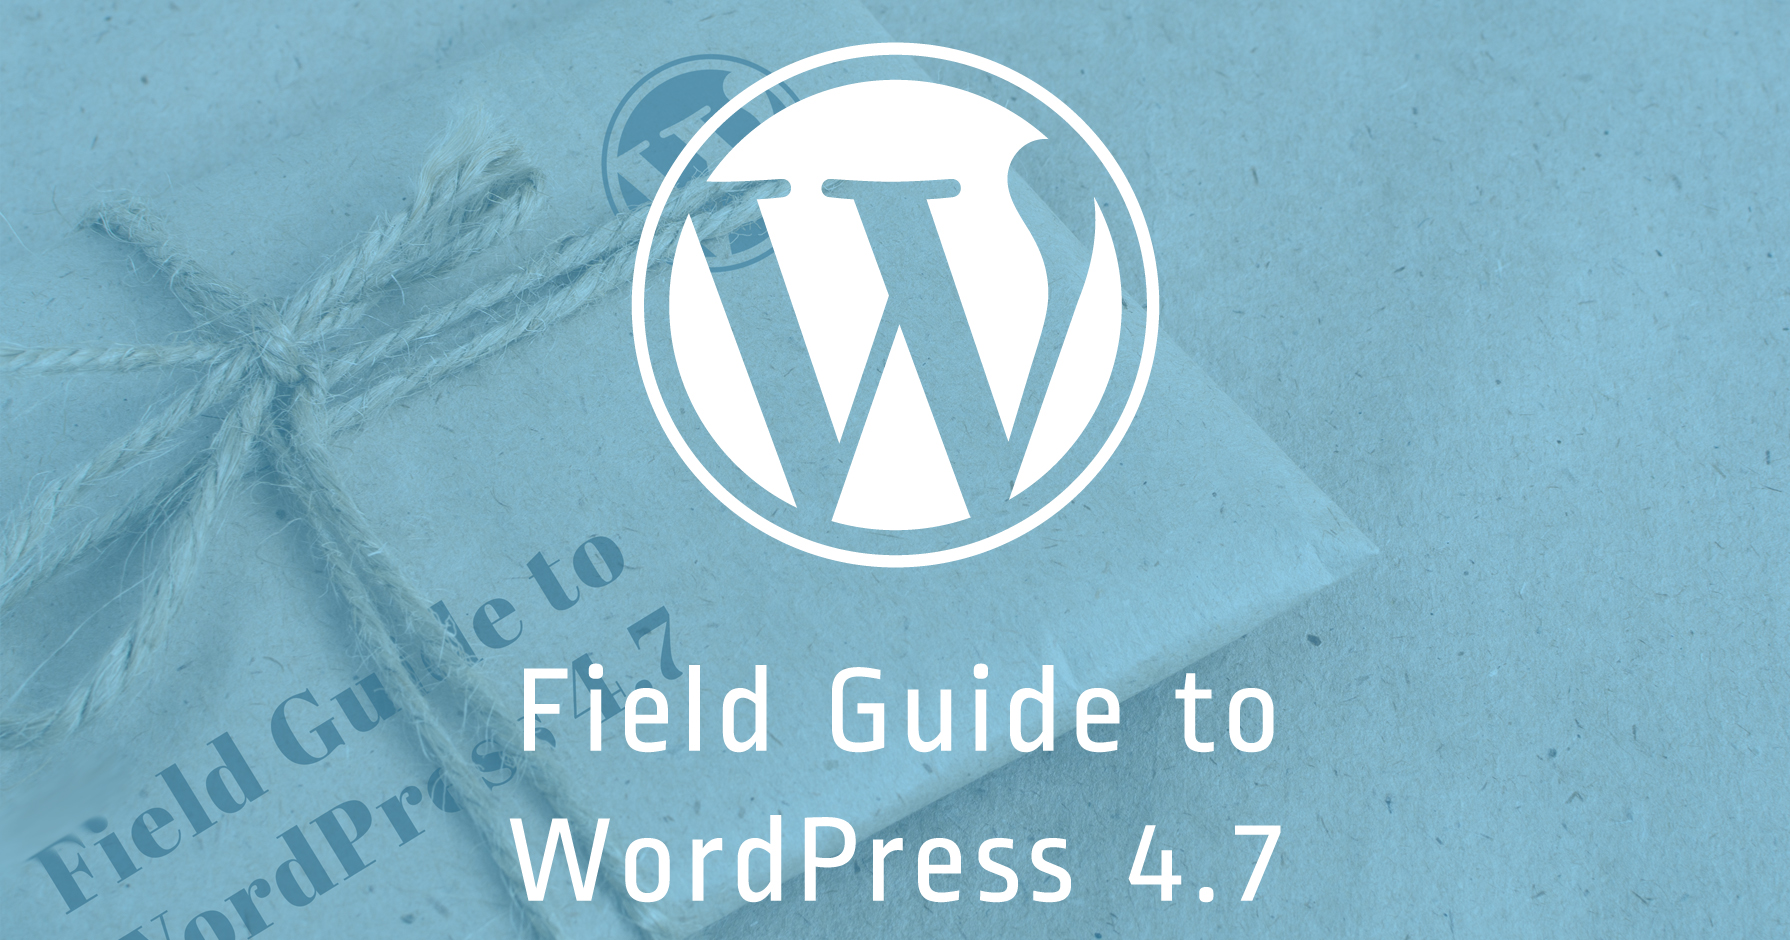 a field guide to WordPress 4.7